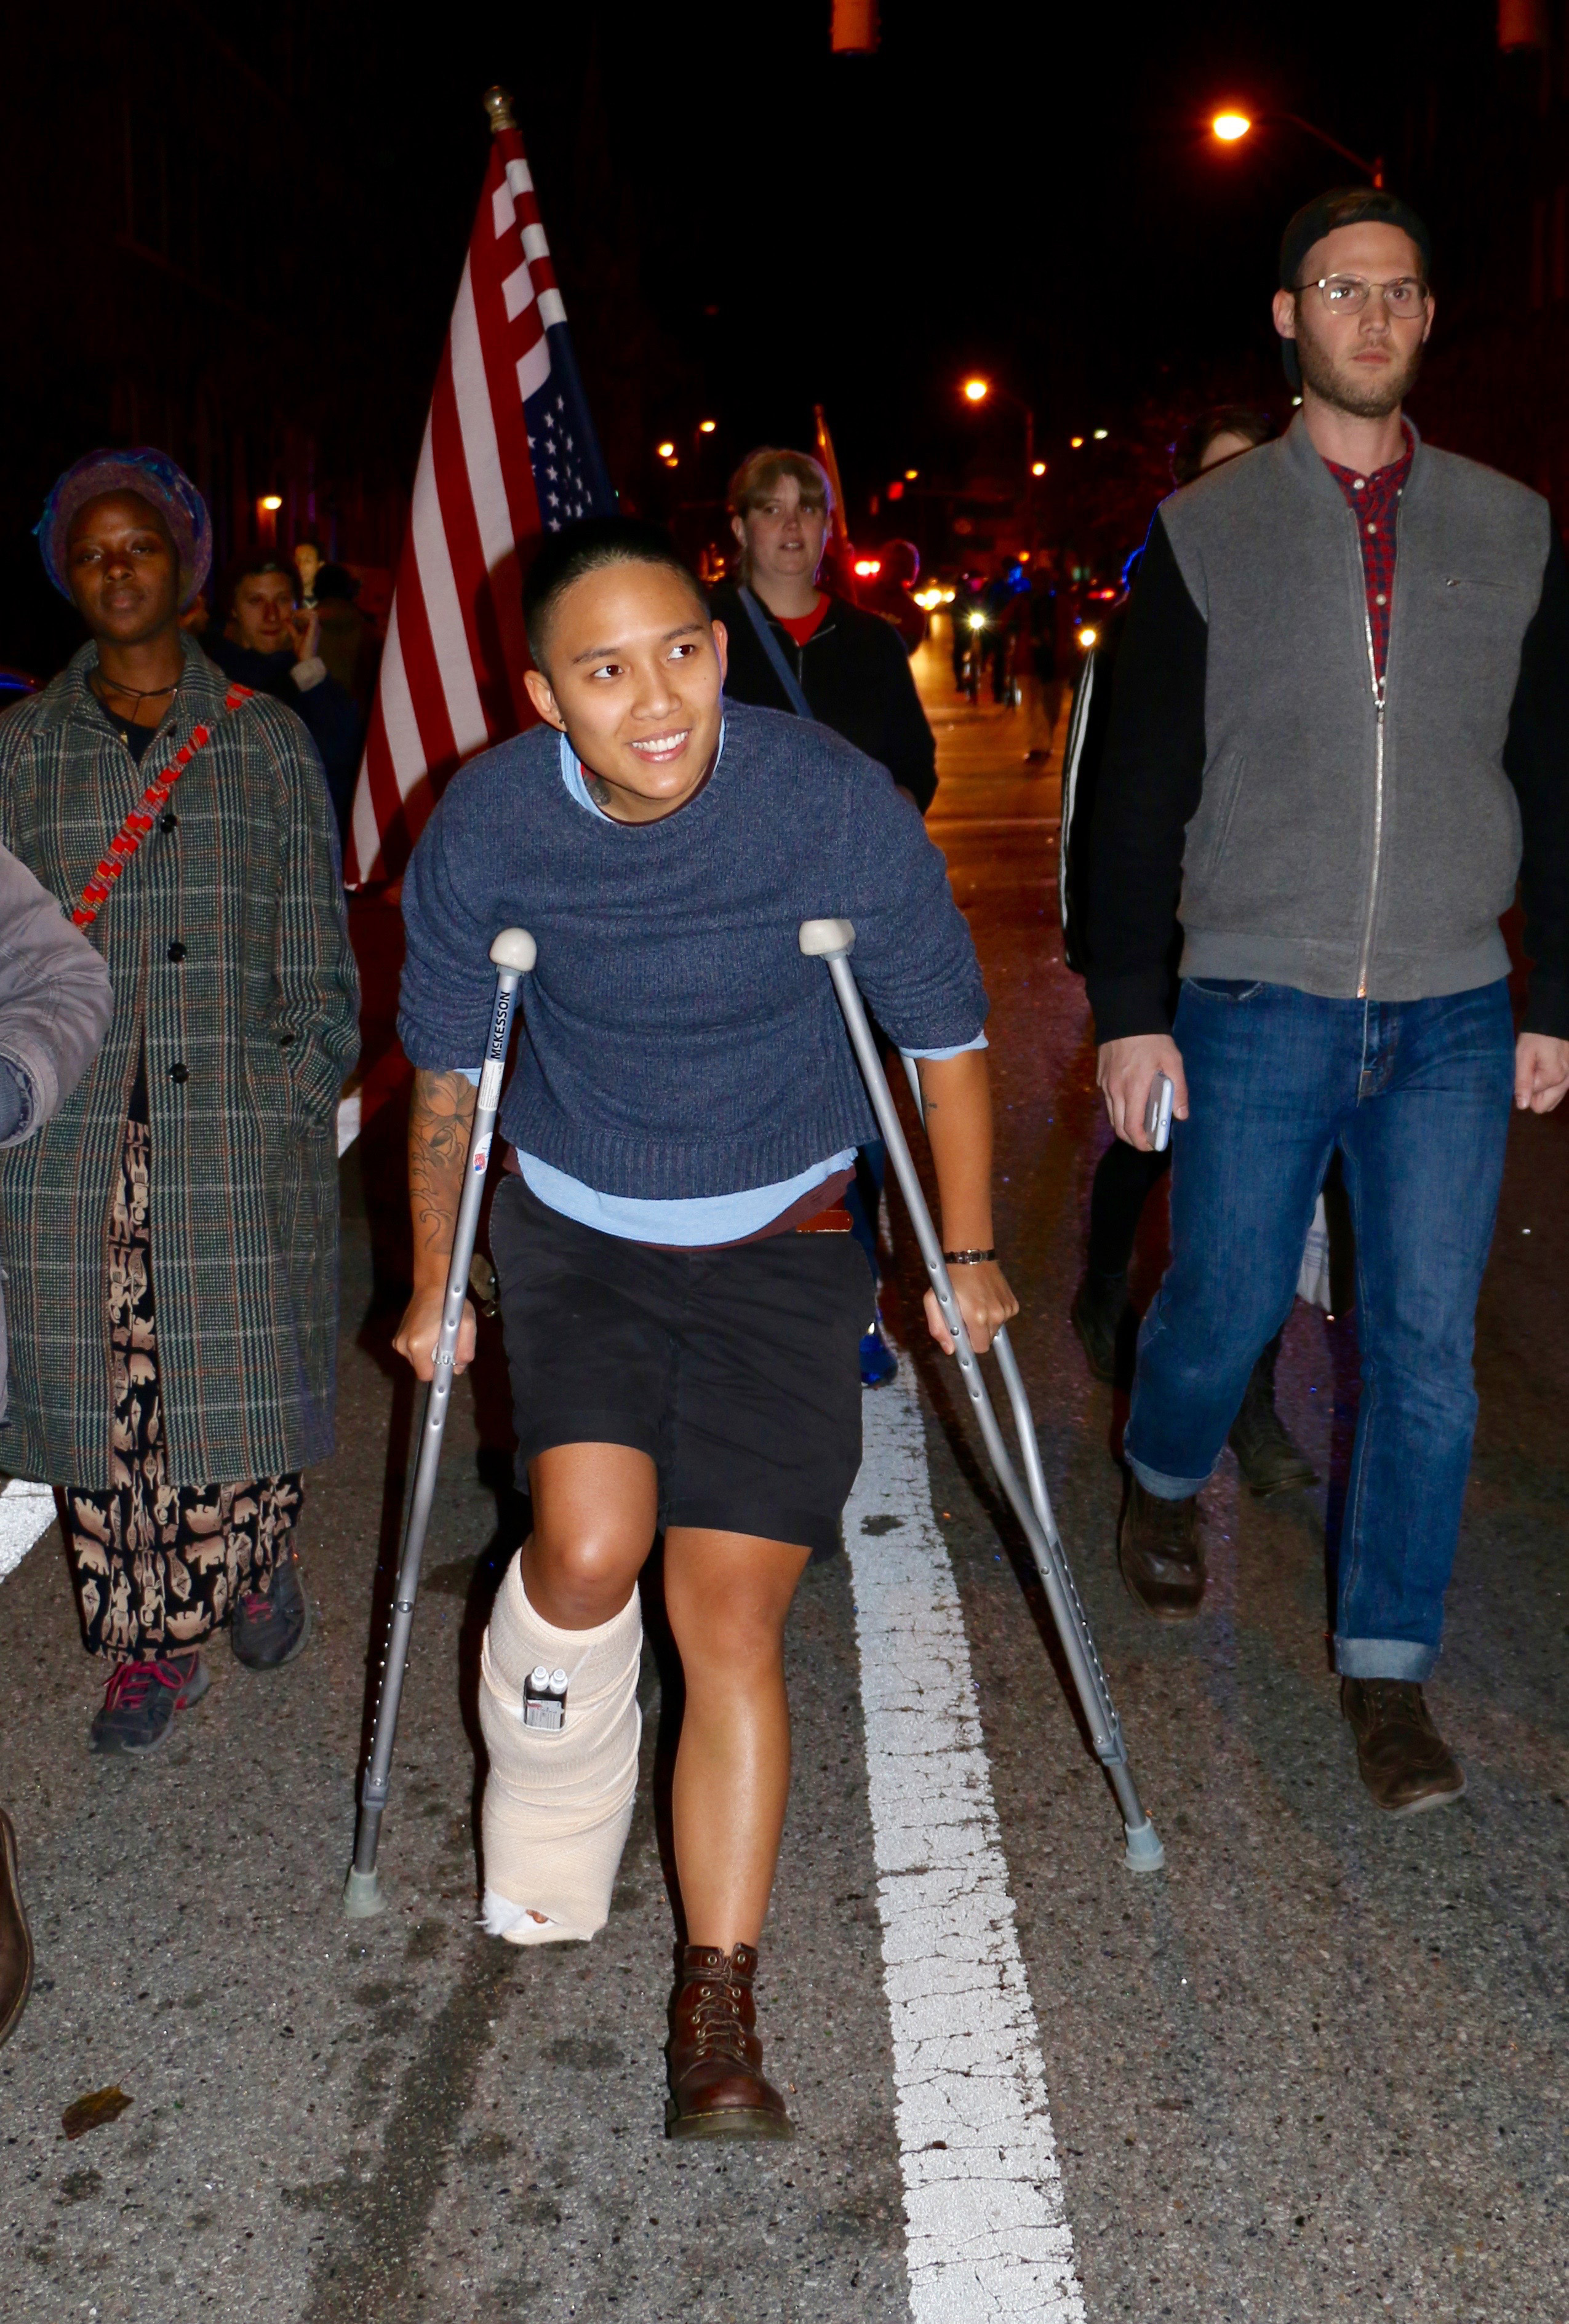 Sam Du, marches on crutches with broken ankle. Photo by Tracy Smith.